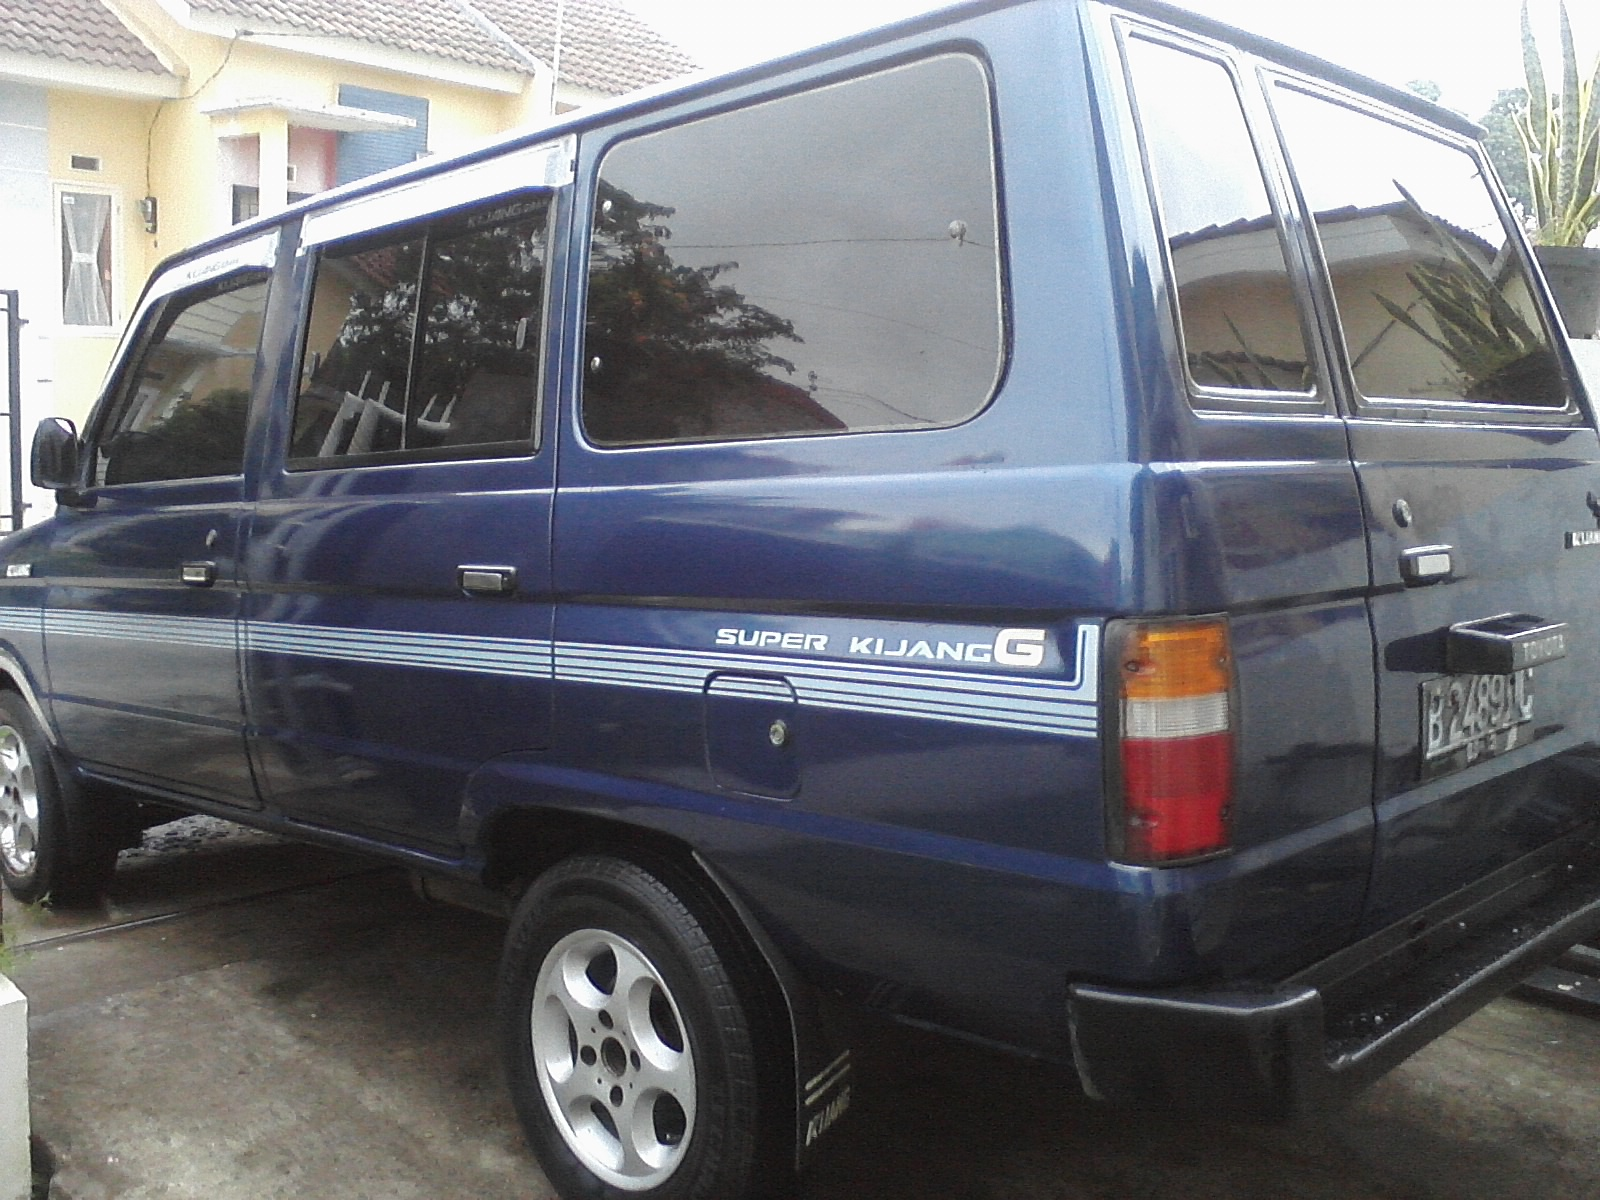 toyota super kijang g long tahun 1994 1995 warna biru metalik